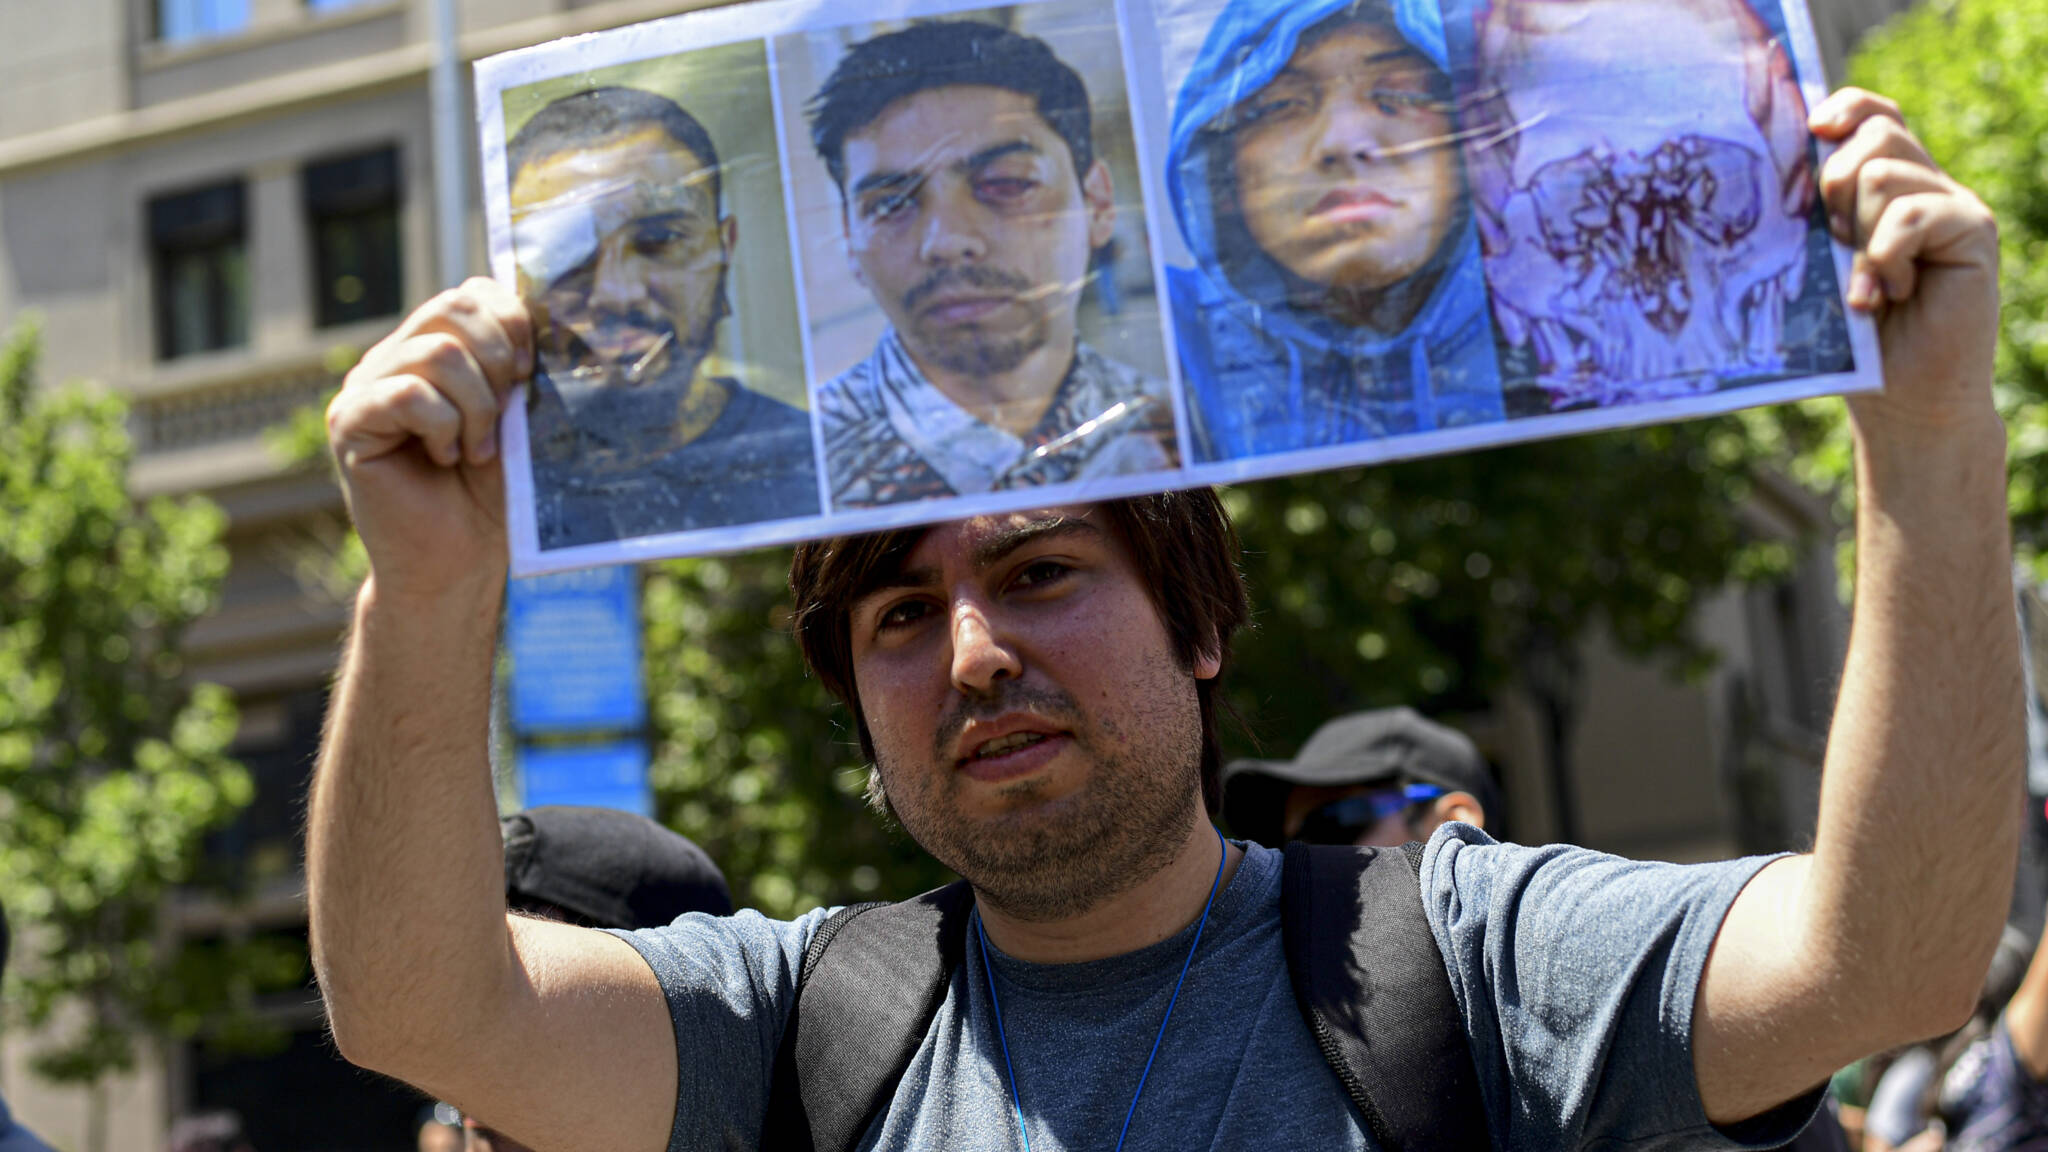 Chilean demonstrator with photos of blinded people, AFP photo